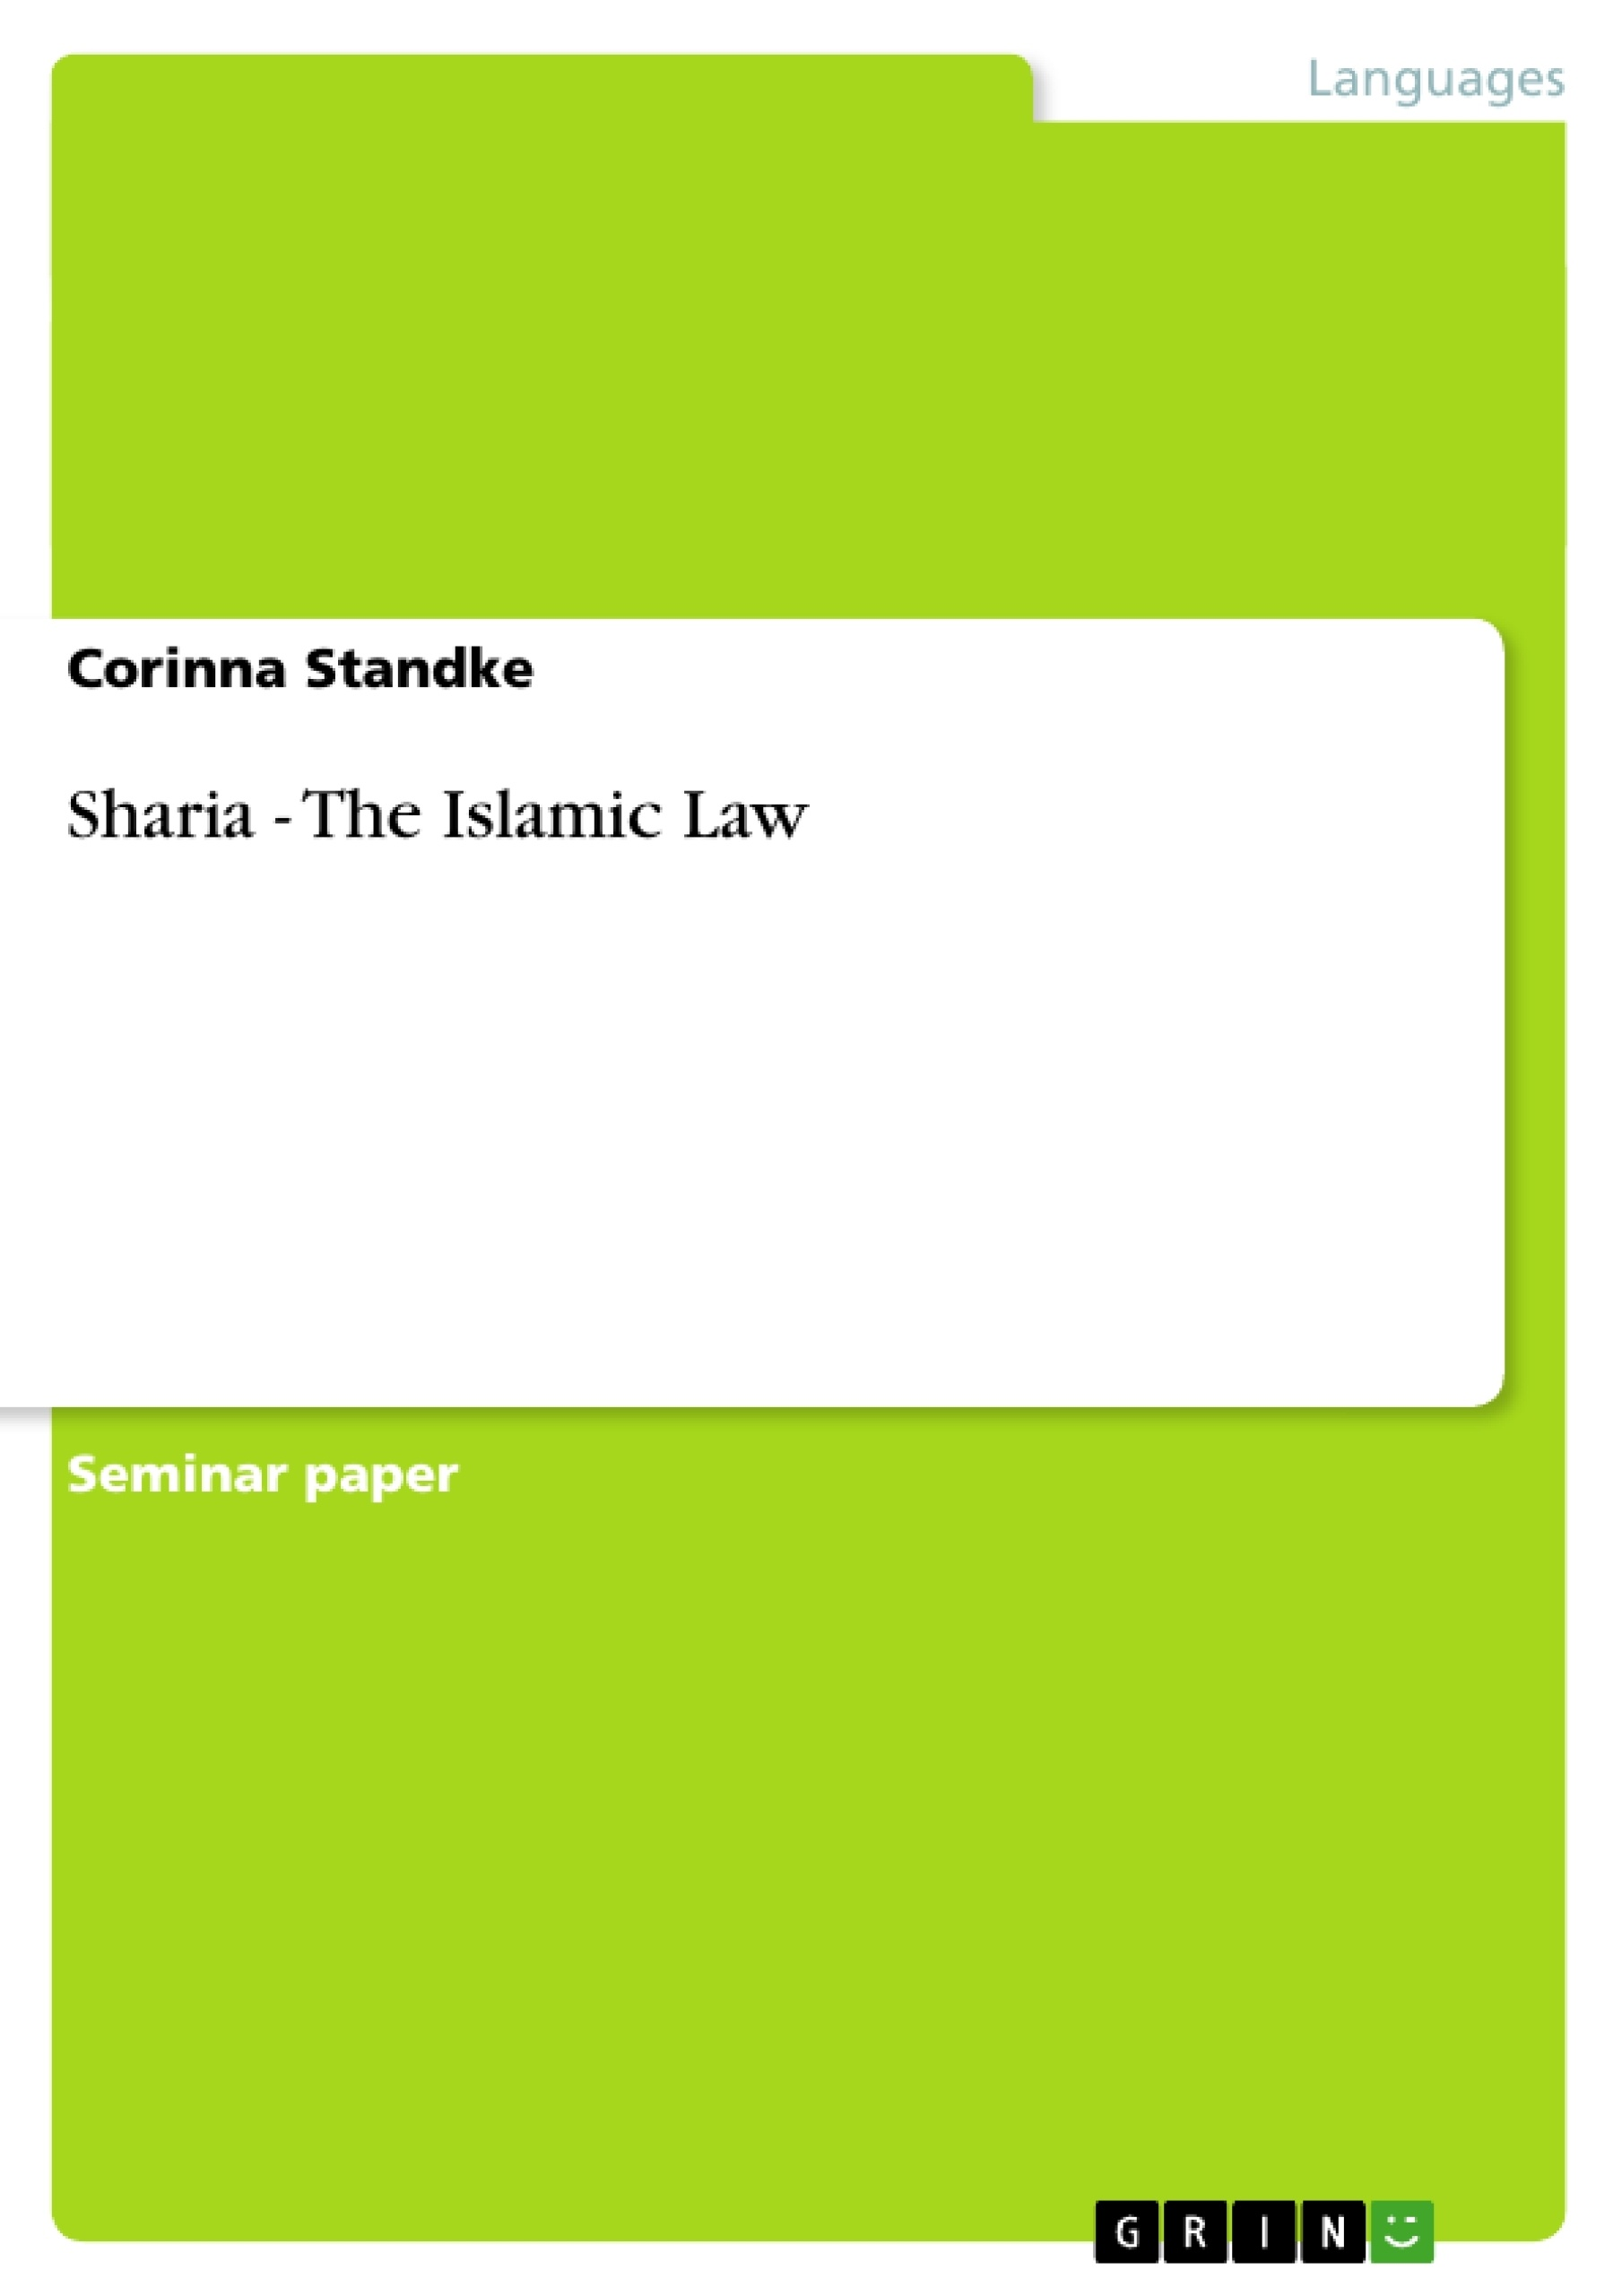 sharia the islamic law publish your master s thesis sharia the islamic law publish your master s thesis bachelor s thesis essay or term paper